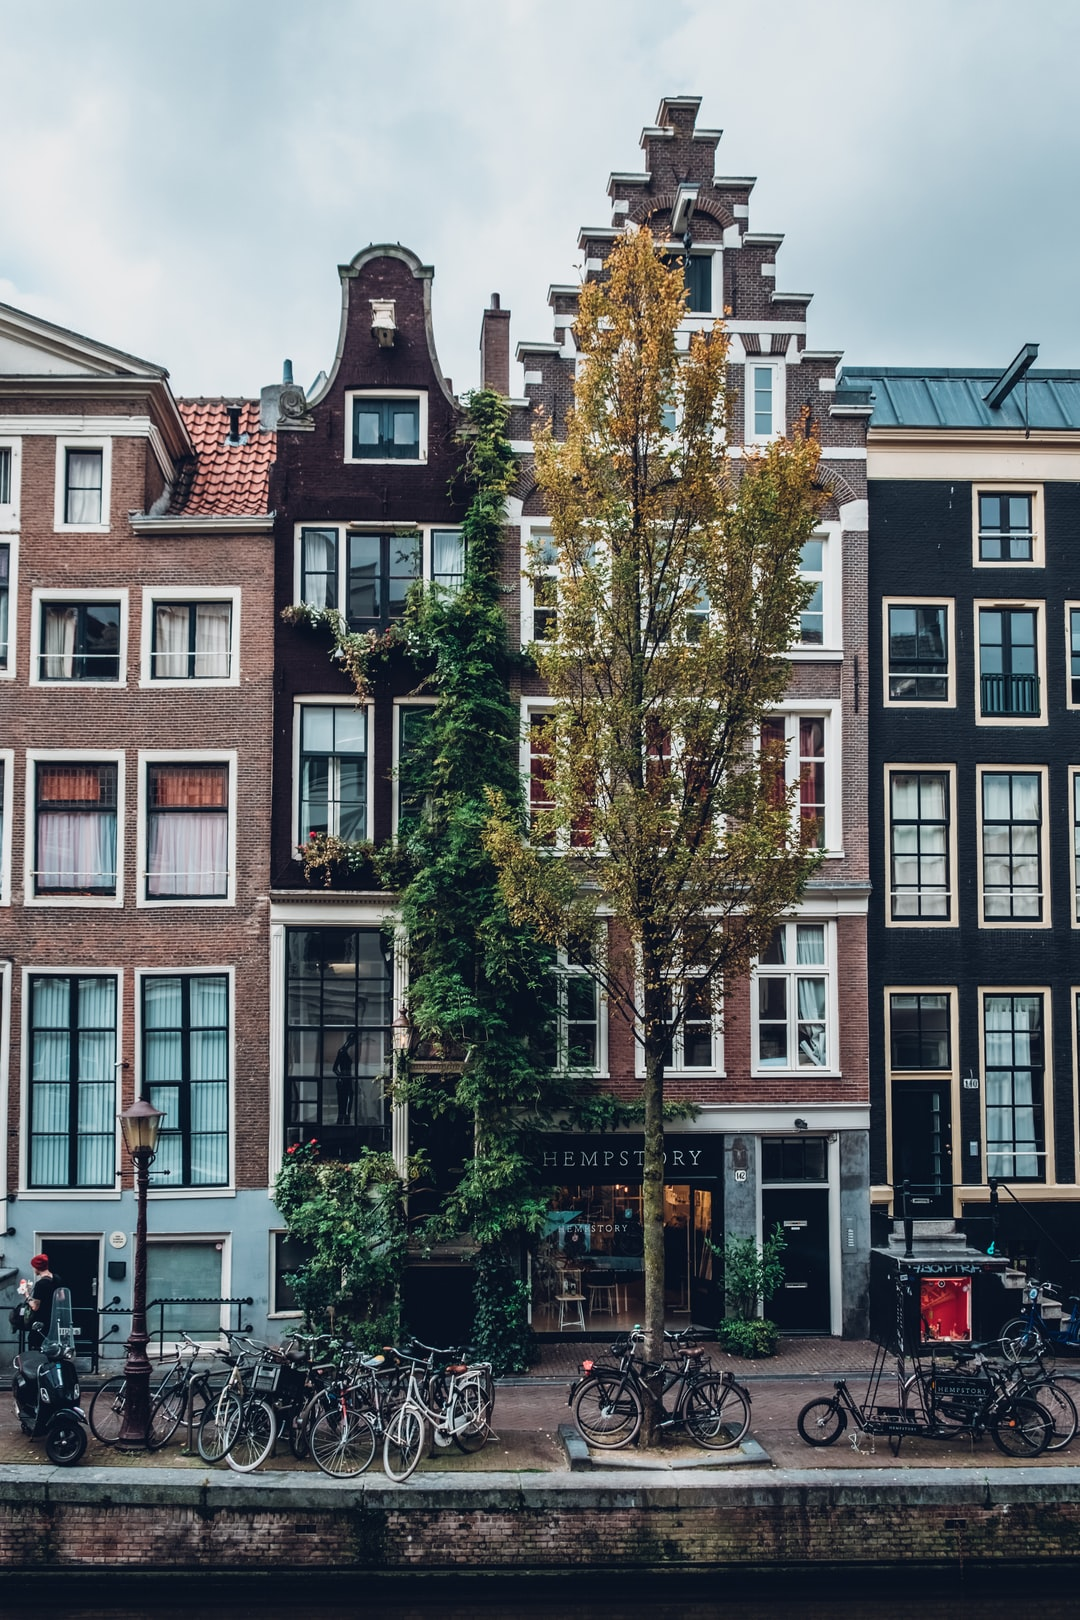 Just Another Street in Amsterdam